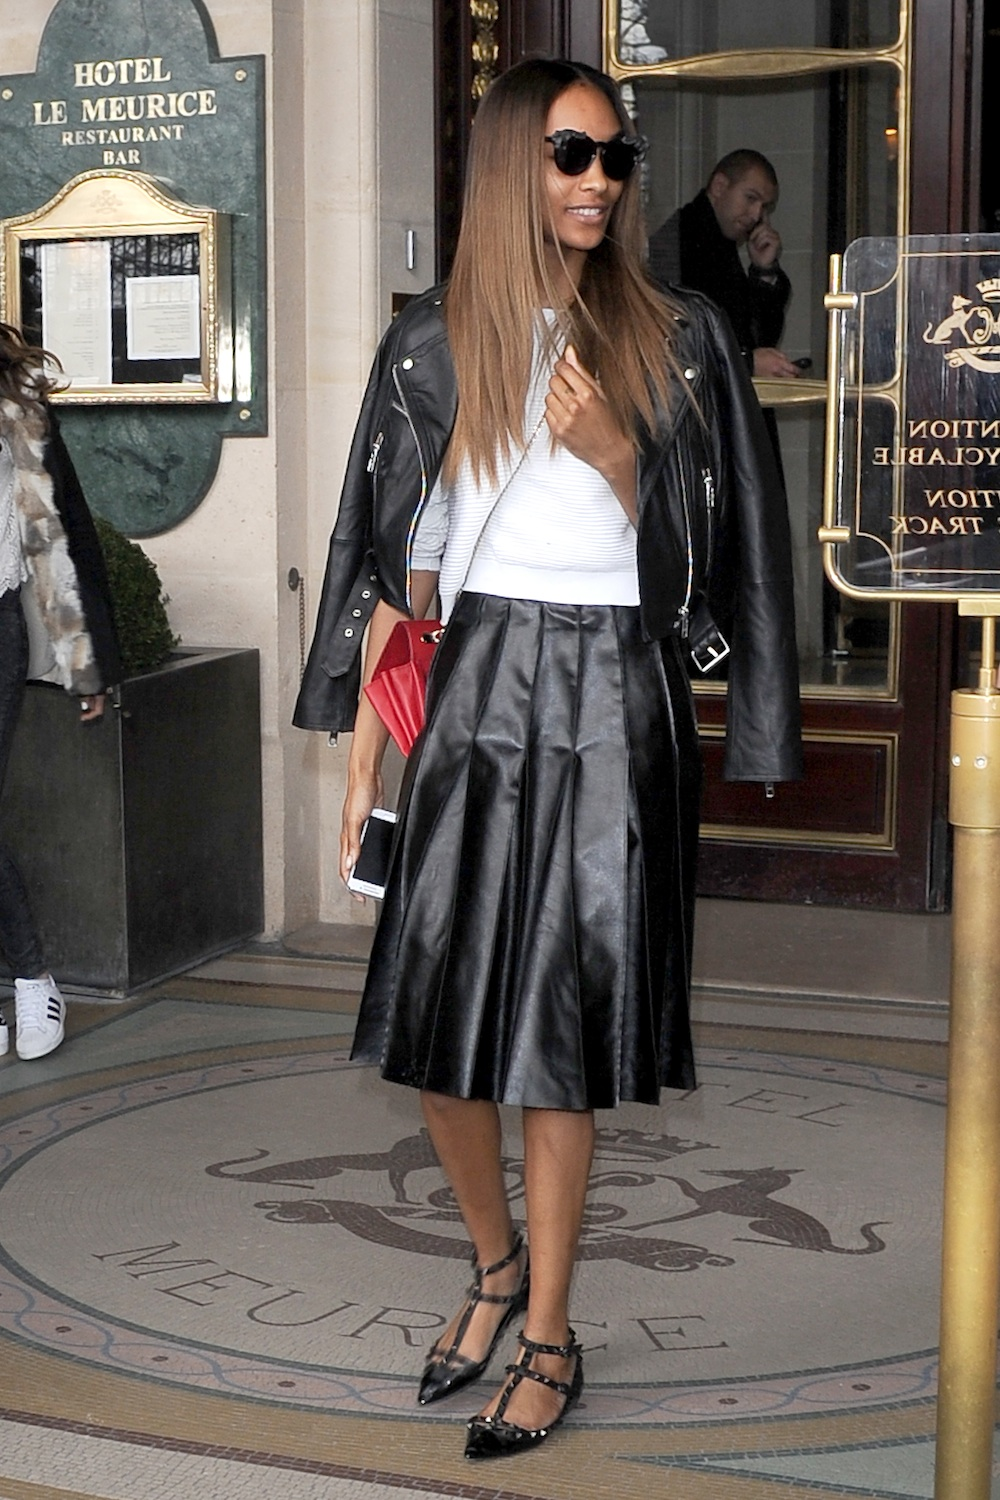 **USA ONLY** Paris, France - Anna Wintour and Jourdan Dunn are looking amazing in front of the cameras at the Le Meurice Hotel in paris, leaving the Paris Fashion Week show. AKM-GSI February 26, 2014 **USA ONLY** To License These Photos, Please Contact : Steve Ginsburg (310) 505-8447 (323) 423-9397 steve@akmgsi.com sales@akmgsi.com or Maria Buda (917) 242-1505 mbuda@akmgsi.com ginsburgspalyinc@gmail.com